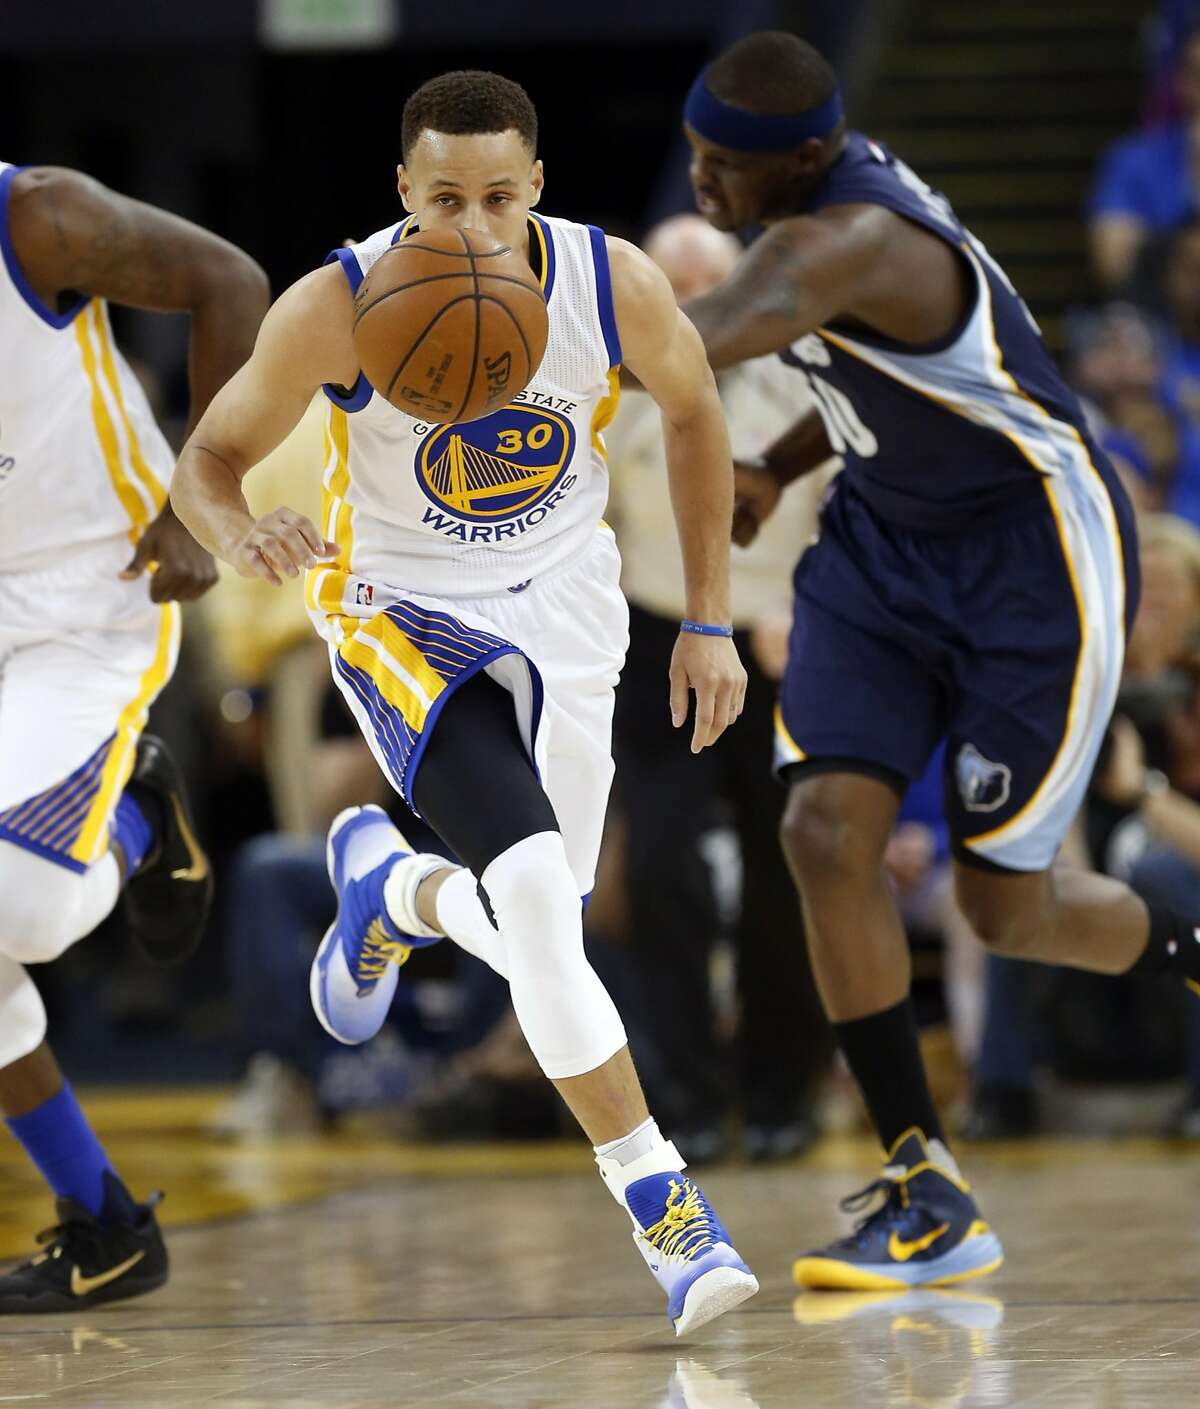 Golden State Warriors' Stephen Curry heads up court leaving Memphis Grizzlies' Zach Randolph behind in 1st quarter during NBA game at Oracle Arena in Oakland, Calif., on Wednesday, April 13, 2016.